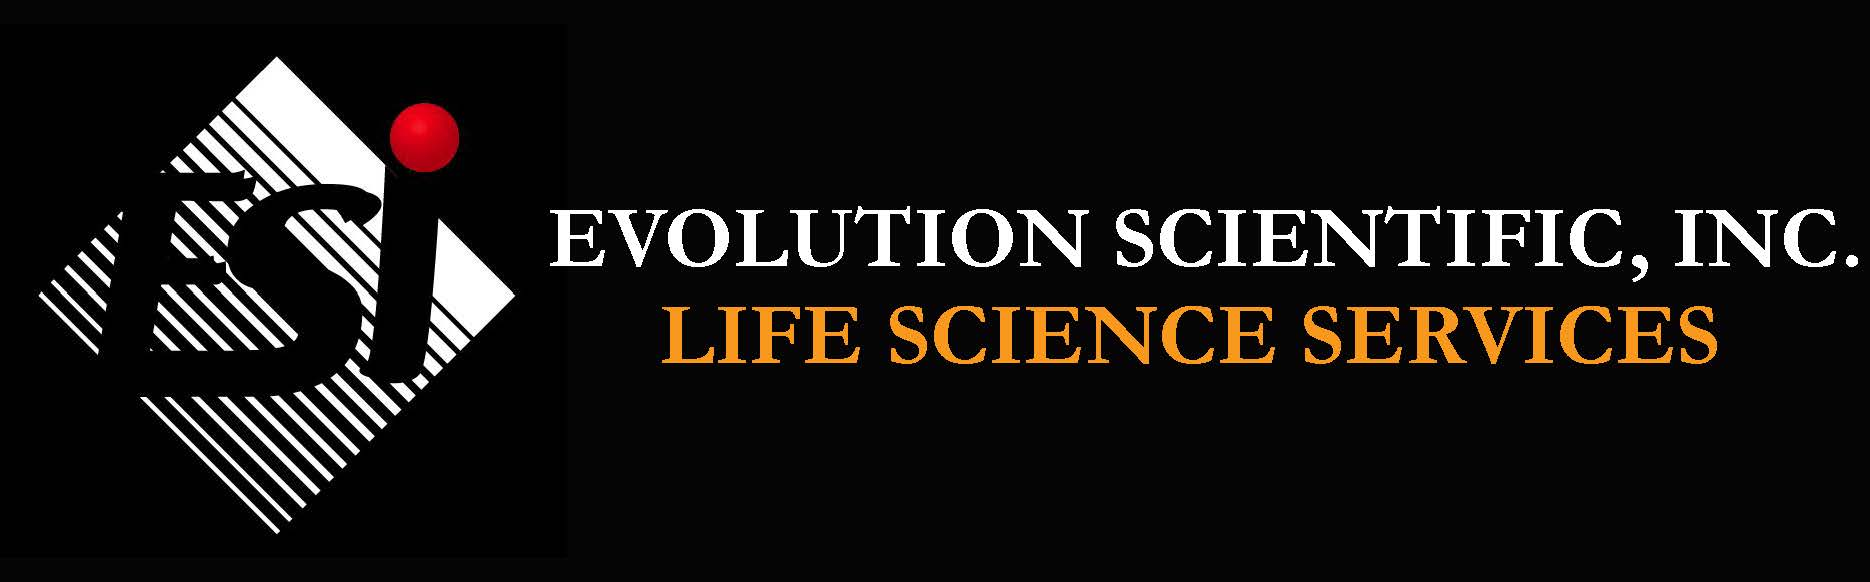 Evolution Scientific